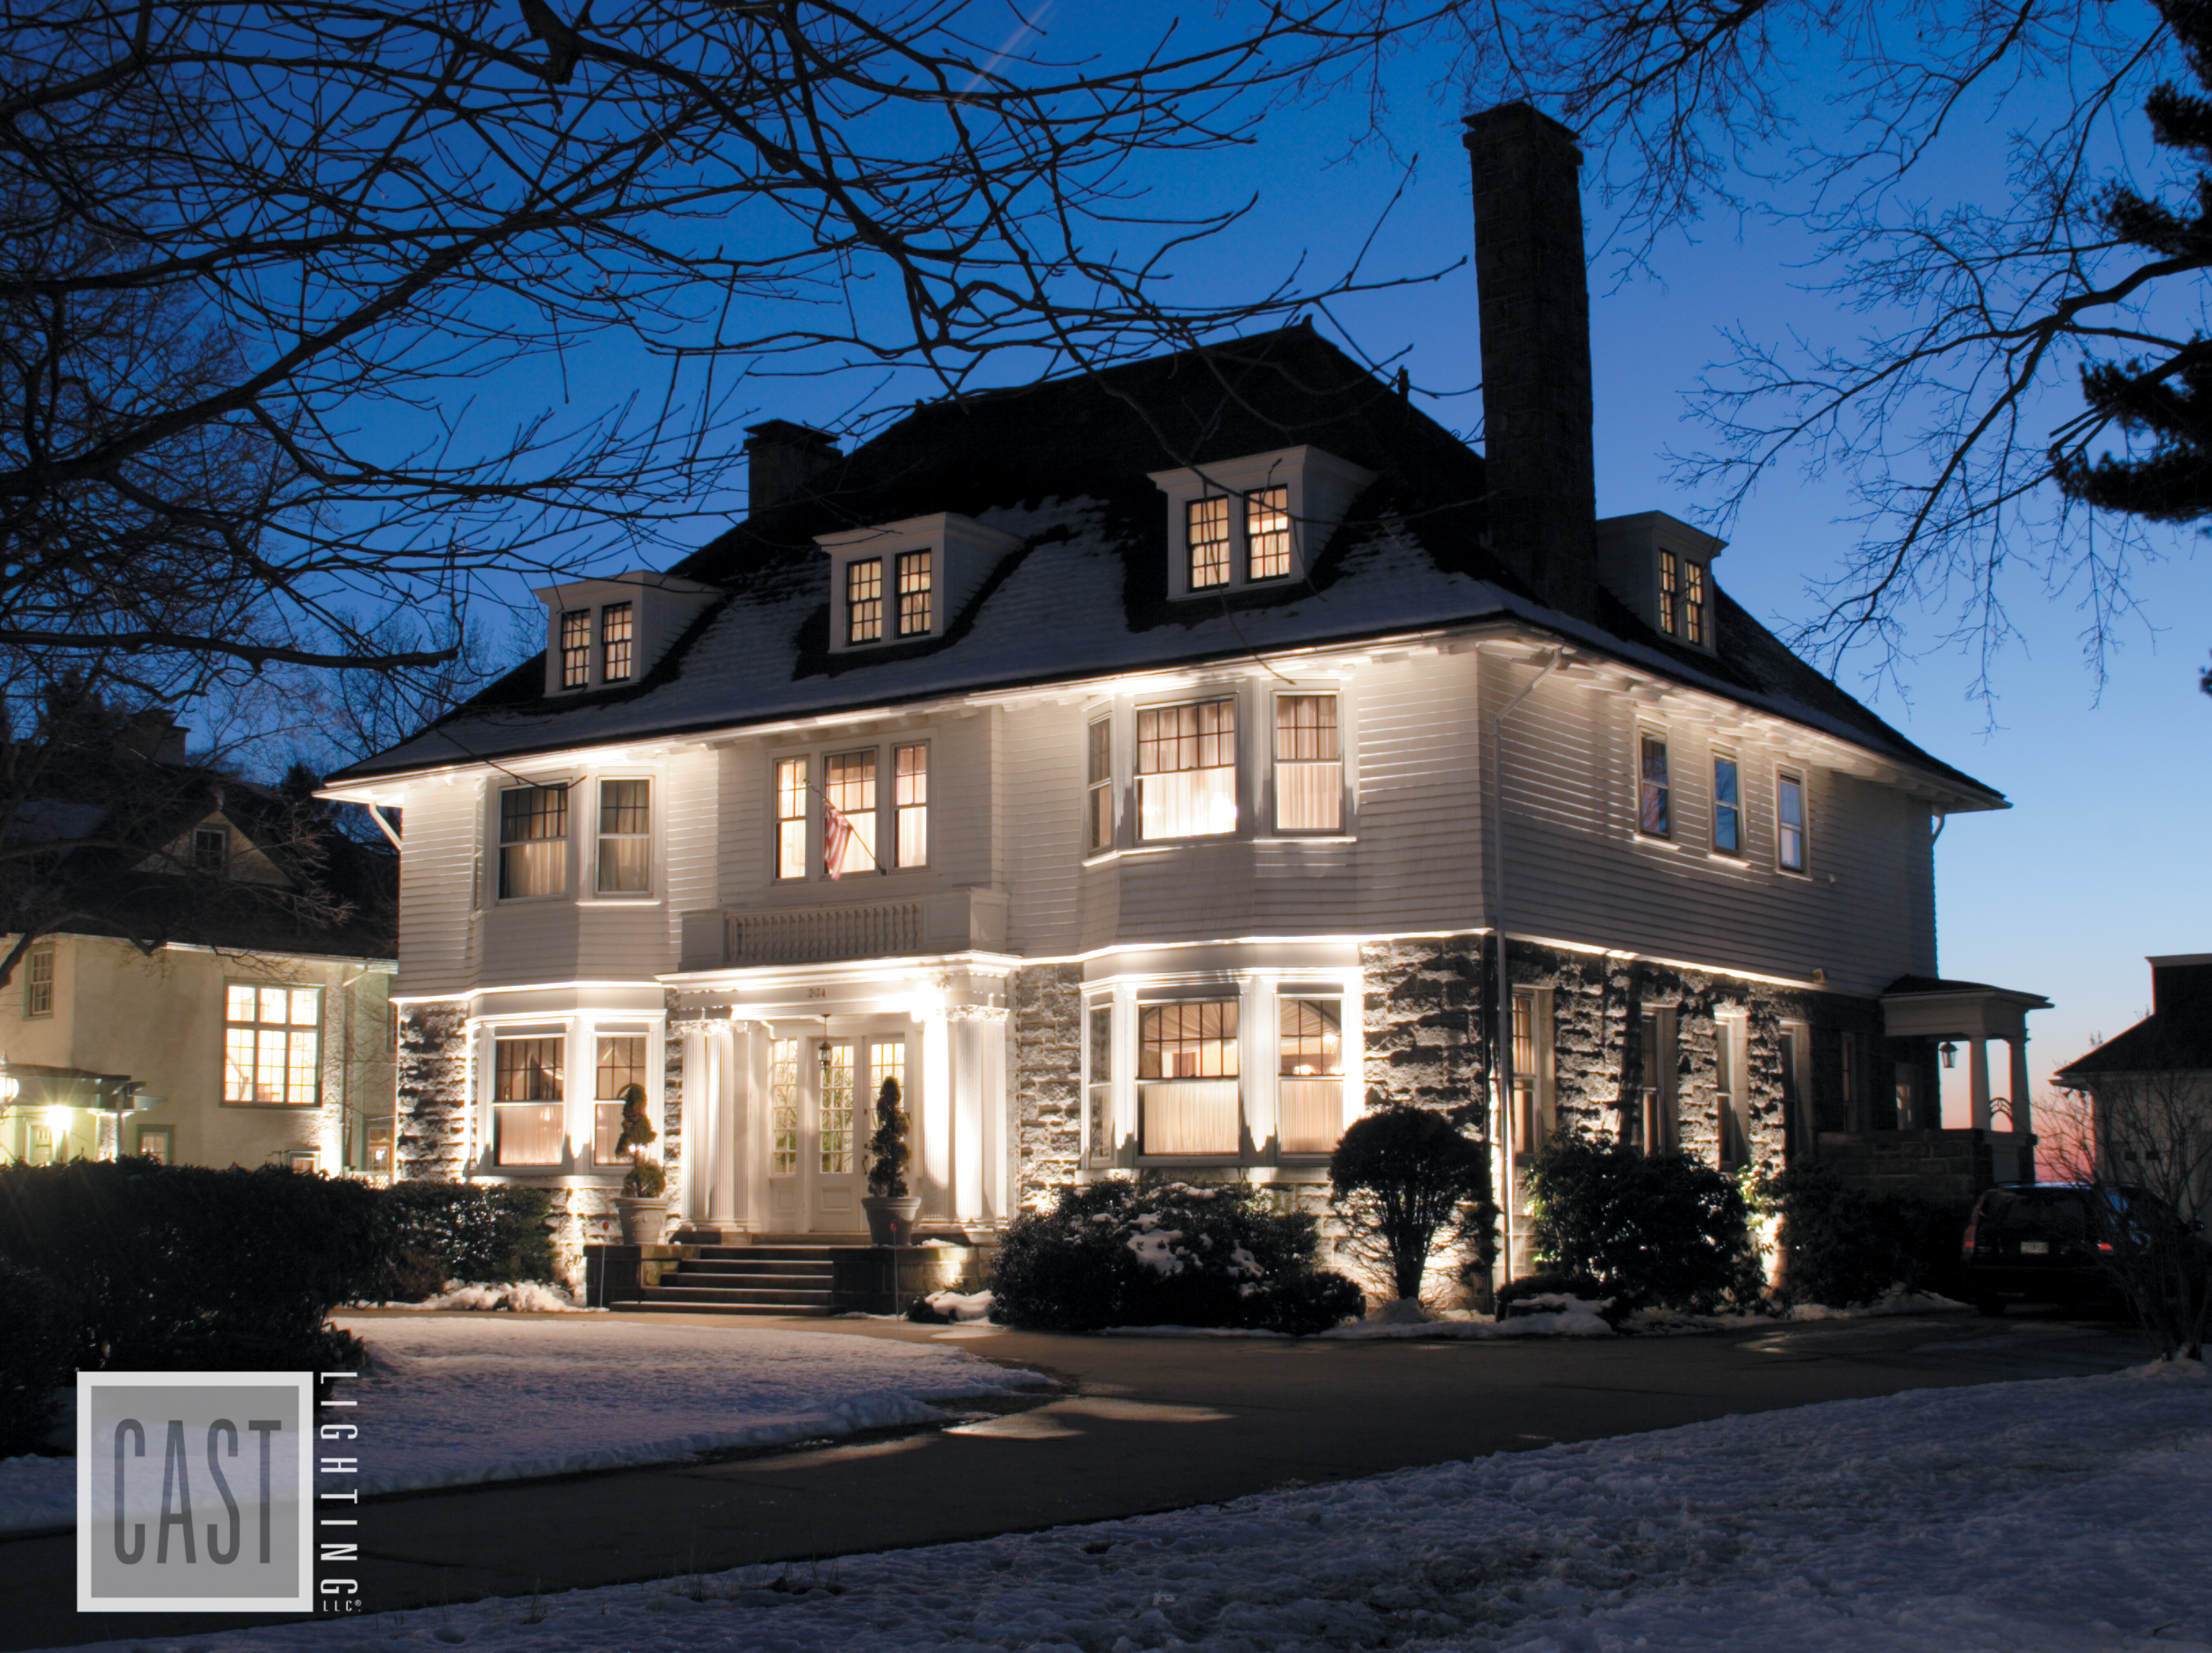 Lovely Landscape Lighting Using Cast Fixtures To Showcase This Gorgeous White Colonial In Freshly Fallen Snow We Love Simple Uplighting And